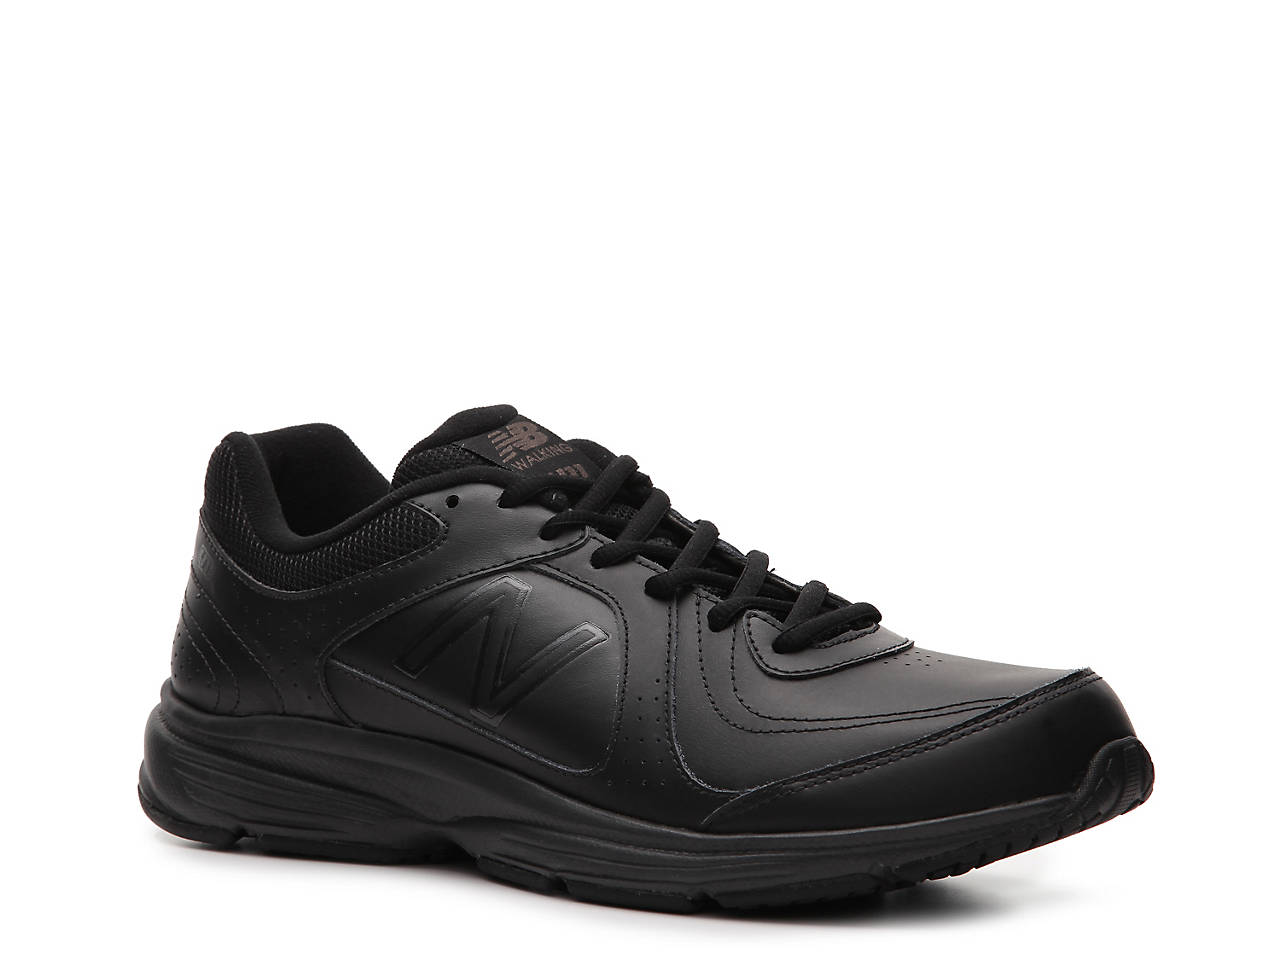 half off 19b96 2d425 411 Walking Shoe - Men's